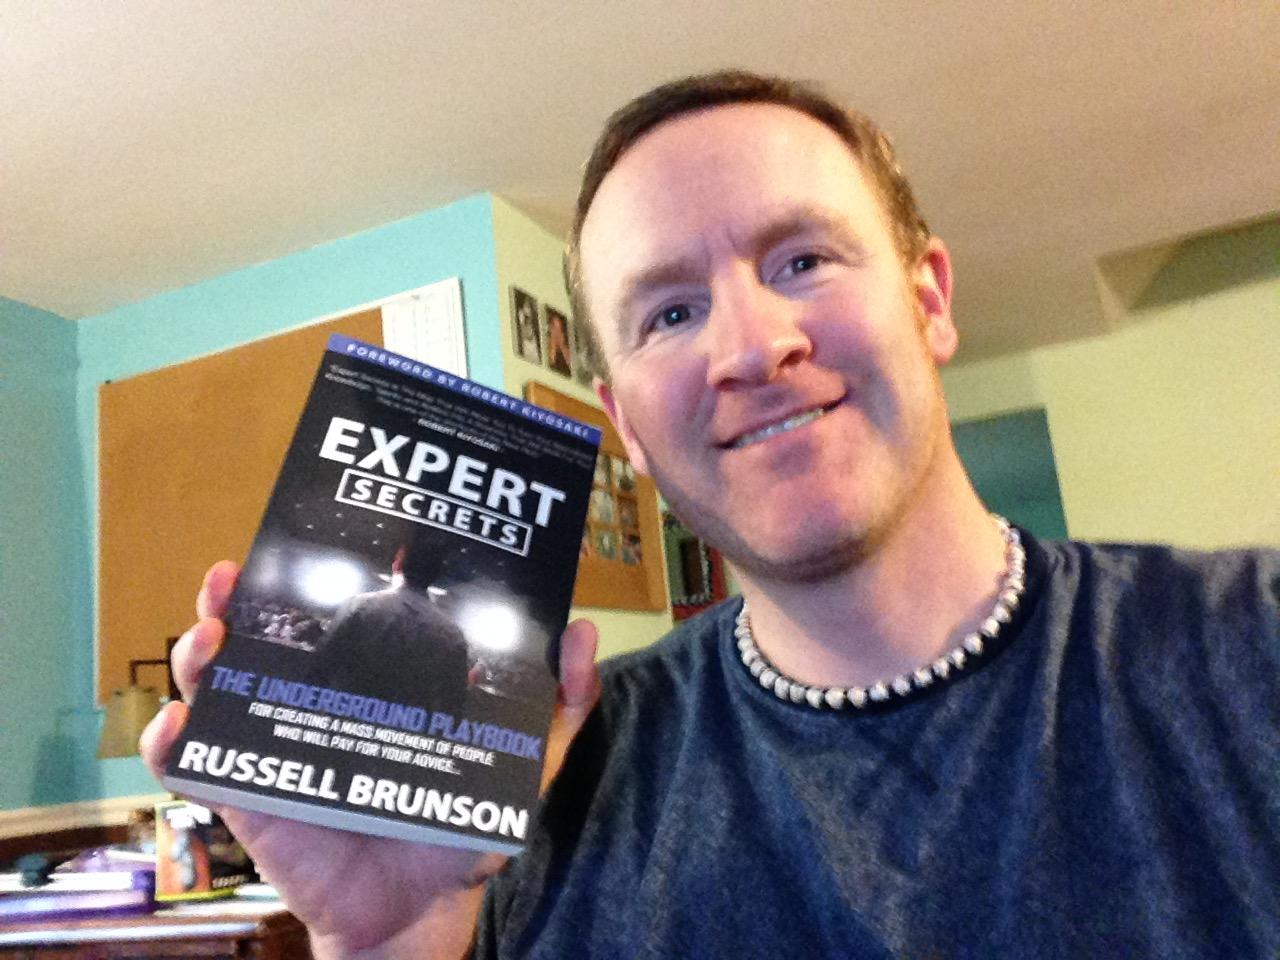 Russell Brunson Expert Secrets Black Box Reveal